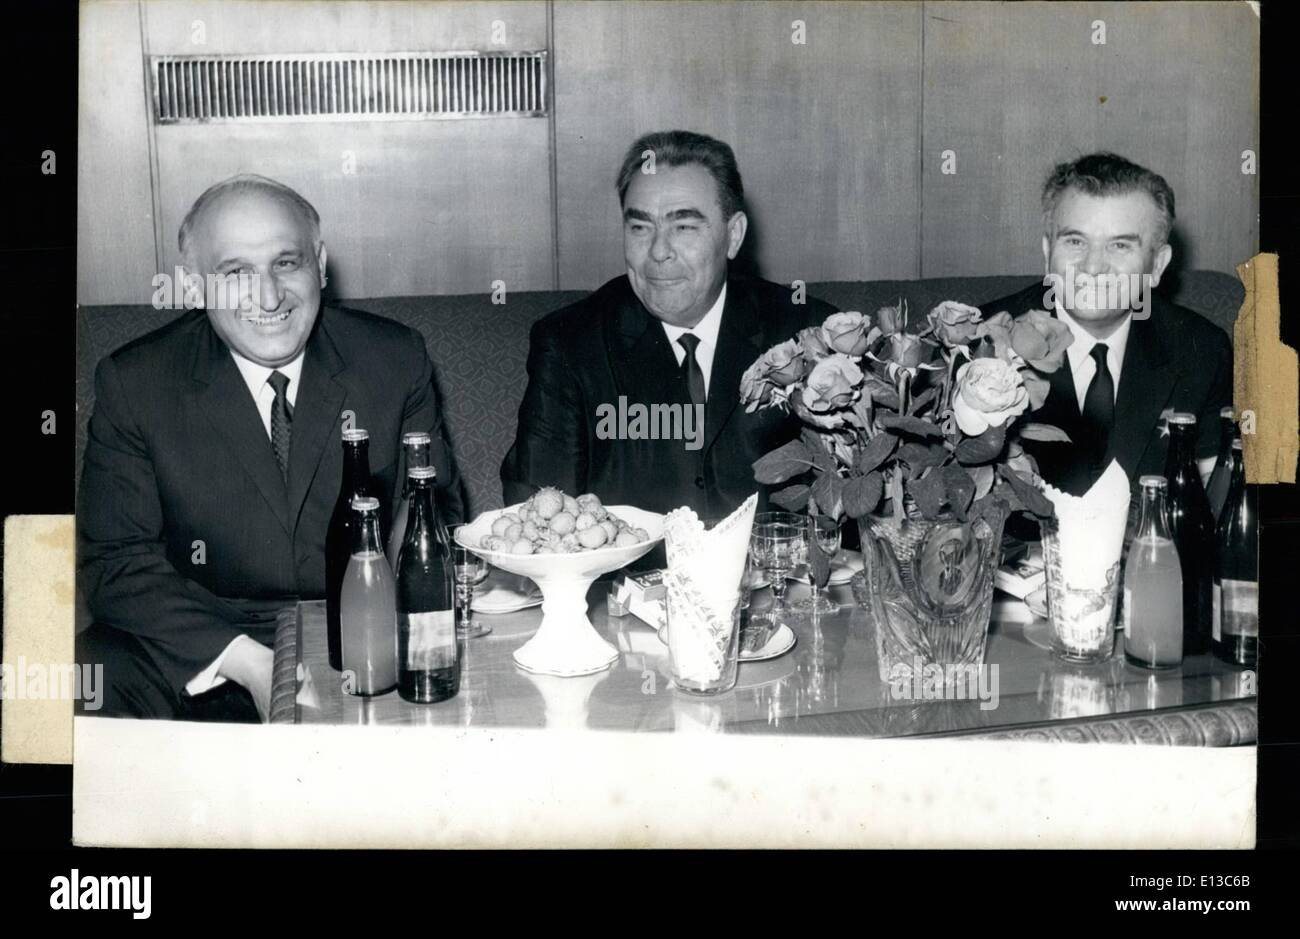 Feb. 29, 2012 - The Soviet Party and Government Delegation headed by L. Brezhnev visited Todor Zhivkov, First Secretary of the CC of BCP and Bulgarian Prime Minister and Georgi Traikov, Chairman of the National Assembly Presidium. OPS: (l to r) T. Zhivkov, L. Brezhnev and G. Traikov. Sofia, May 11, 1967 - Stock Image